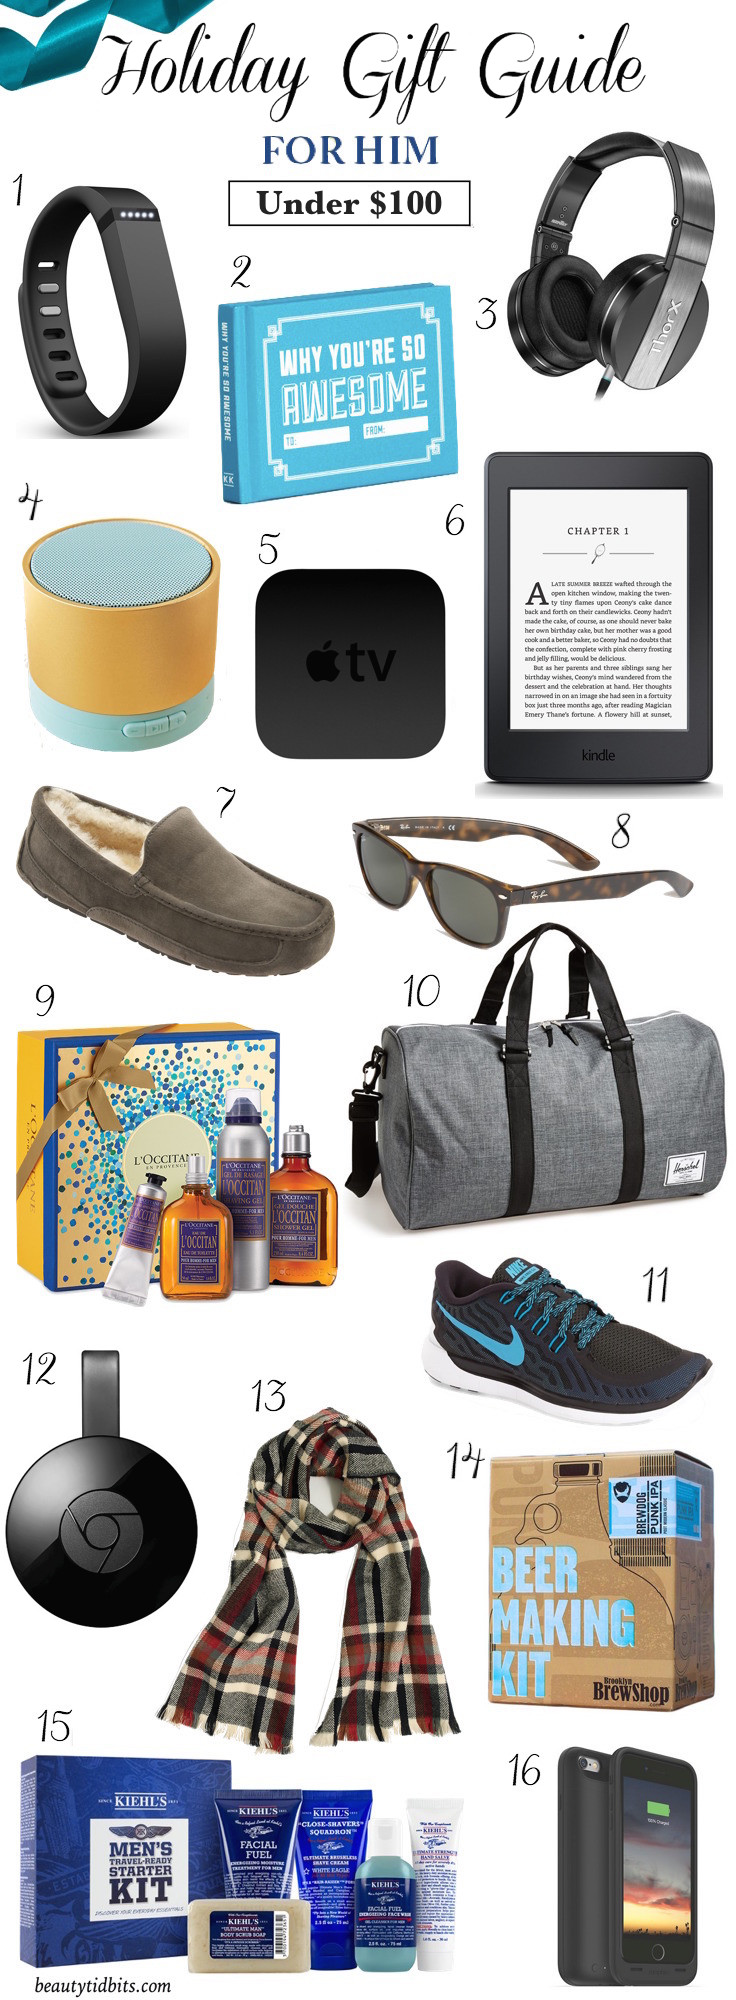 16 Holiday Gifts Your Man Will Love And Actually Use